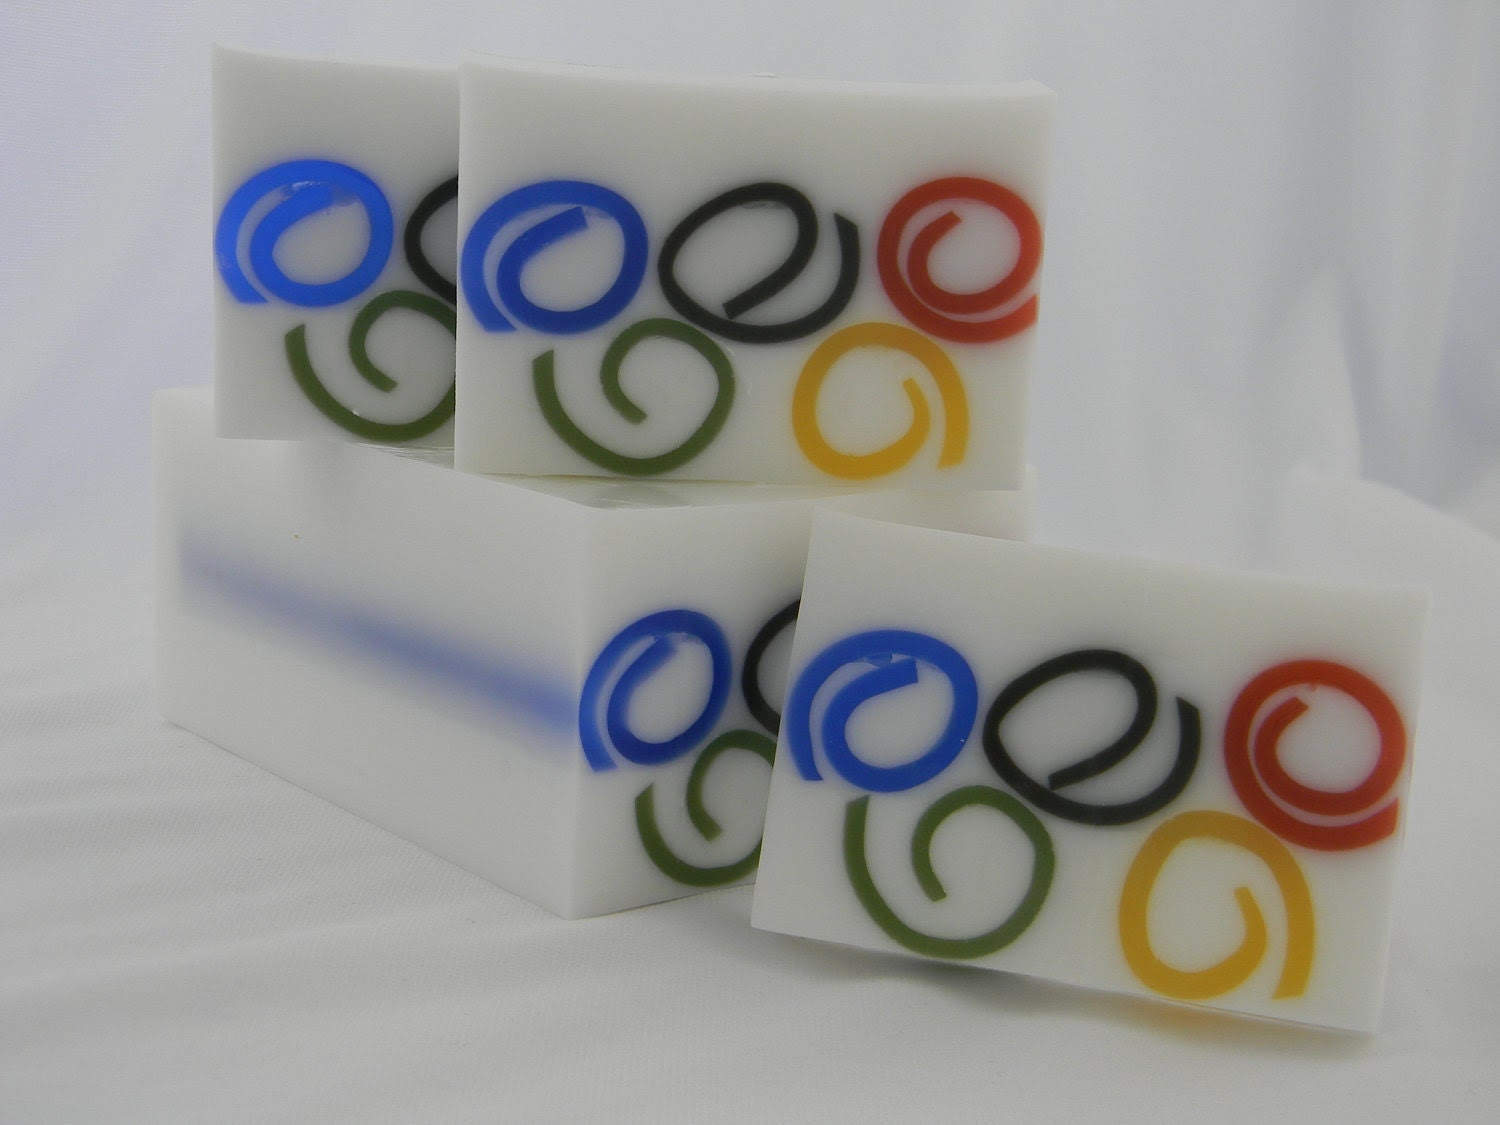 Olympic Ring Soap - London Olympics - special olympics - 2012 olympics - olympics party